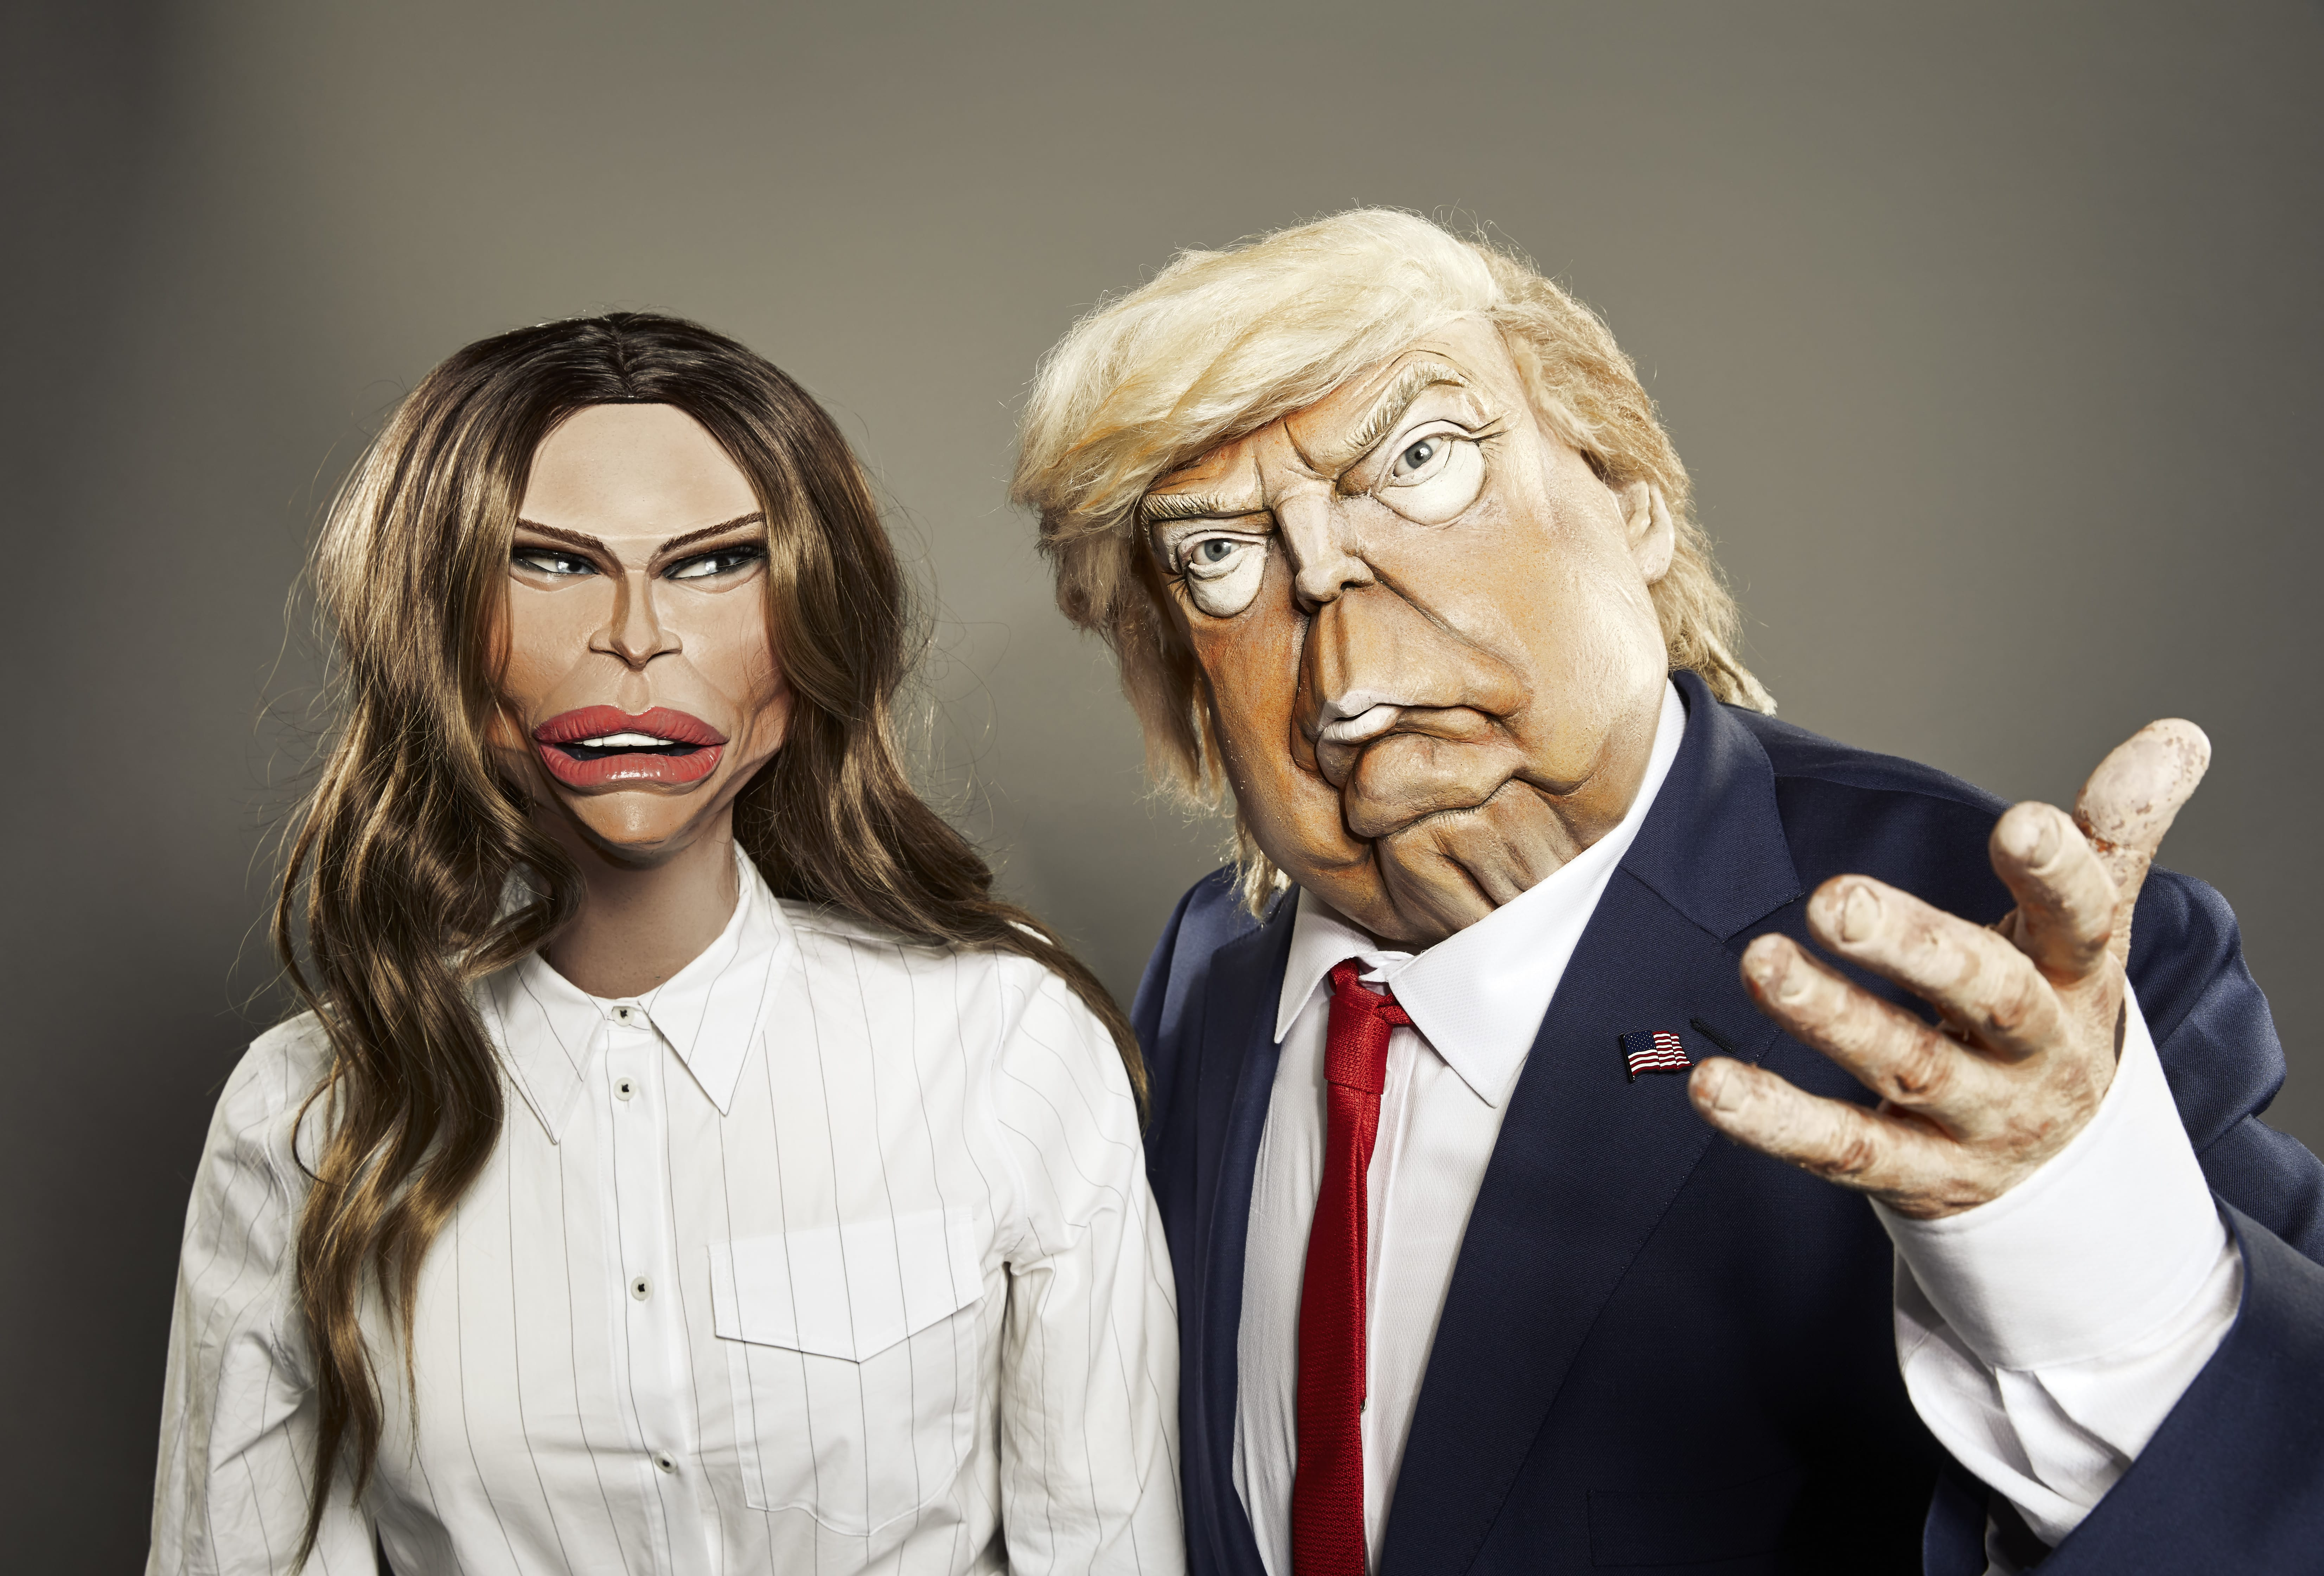 Donald Trump will feature in the new series of Spitting Image